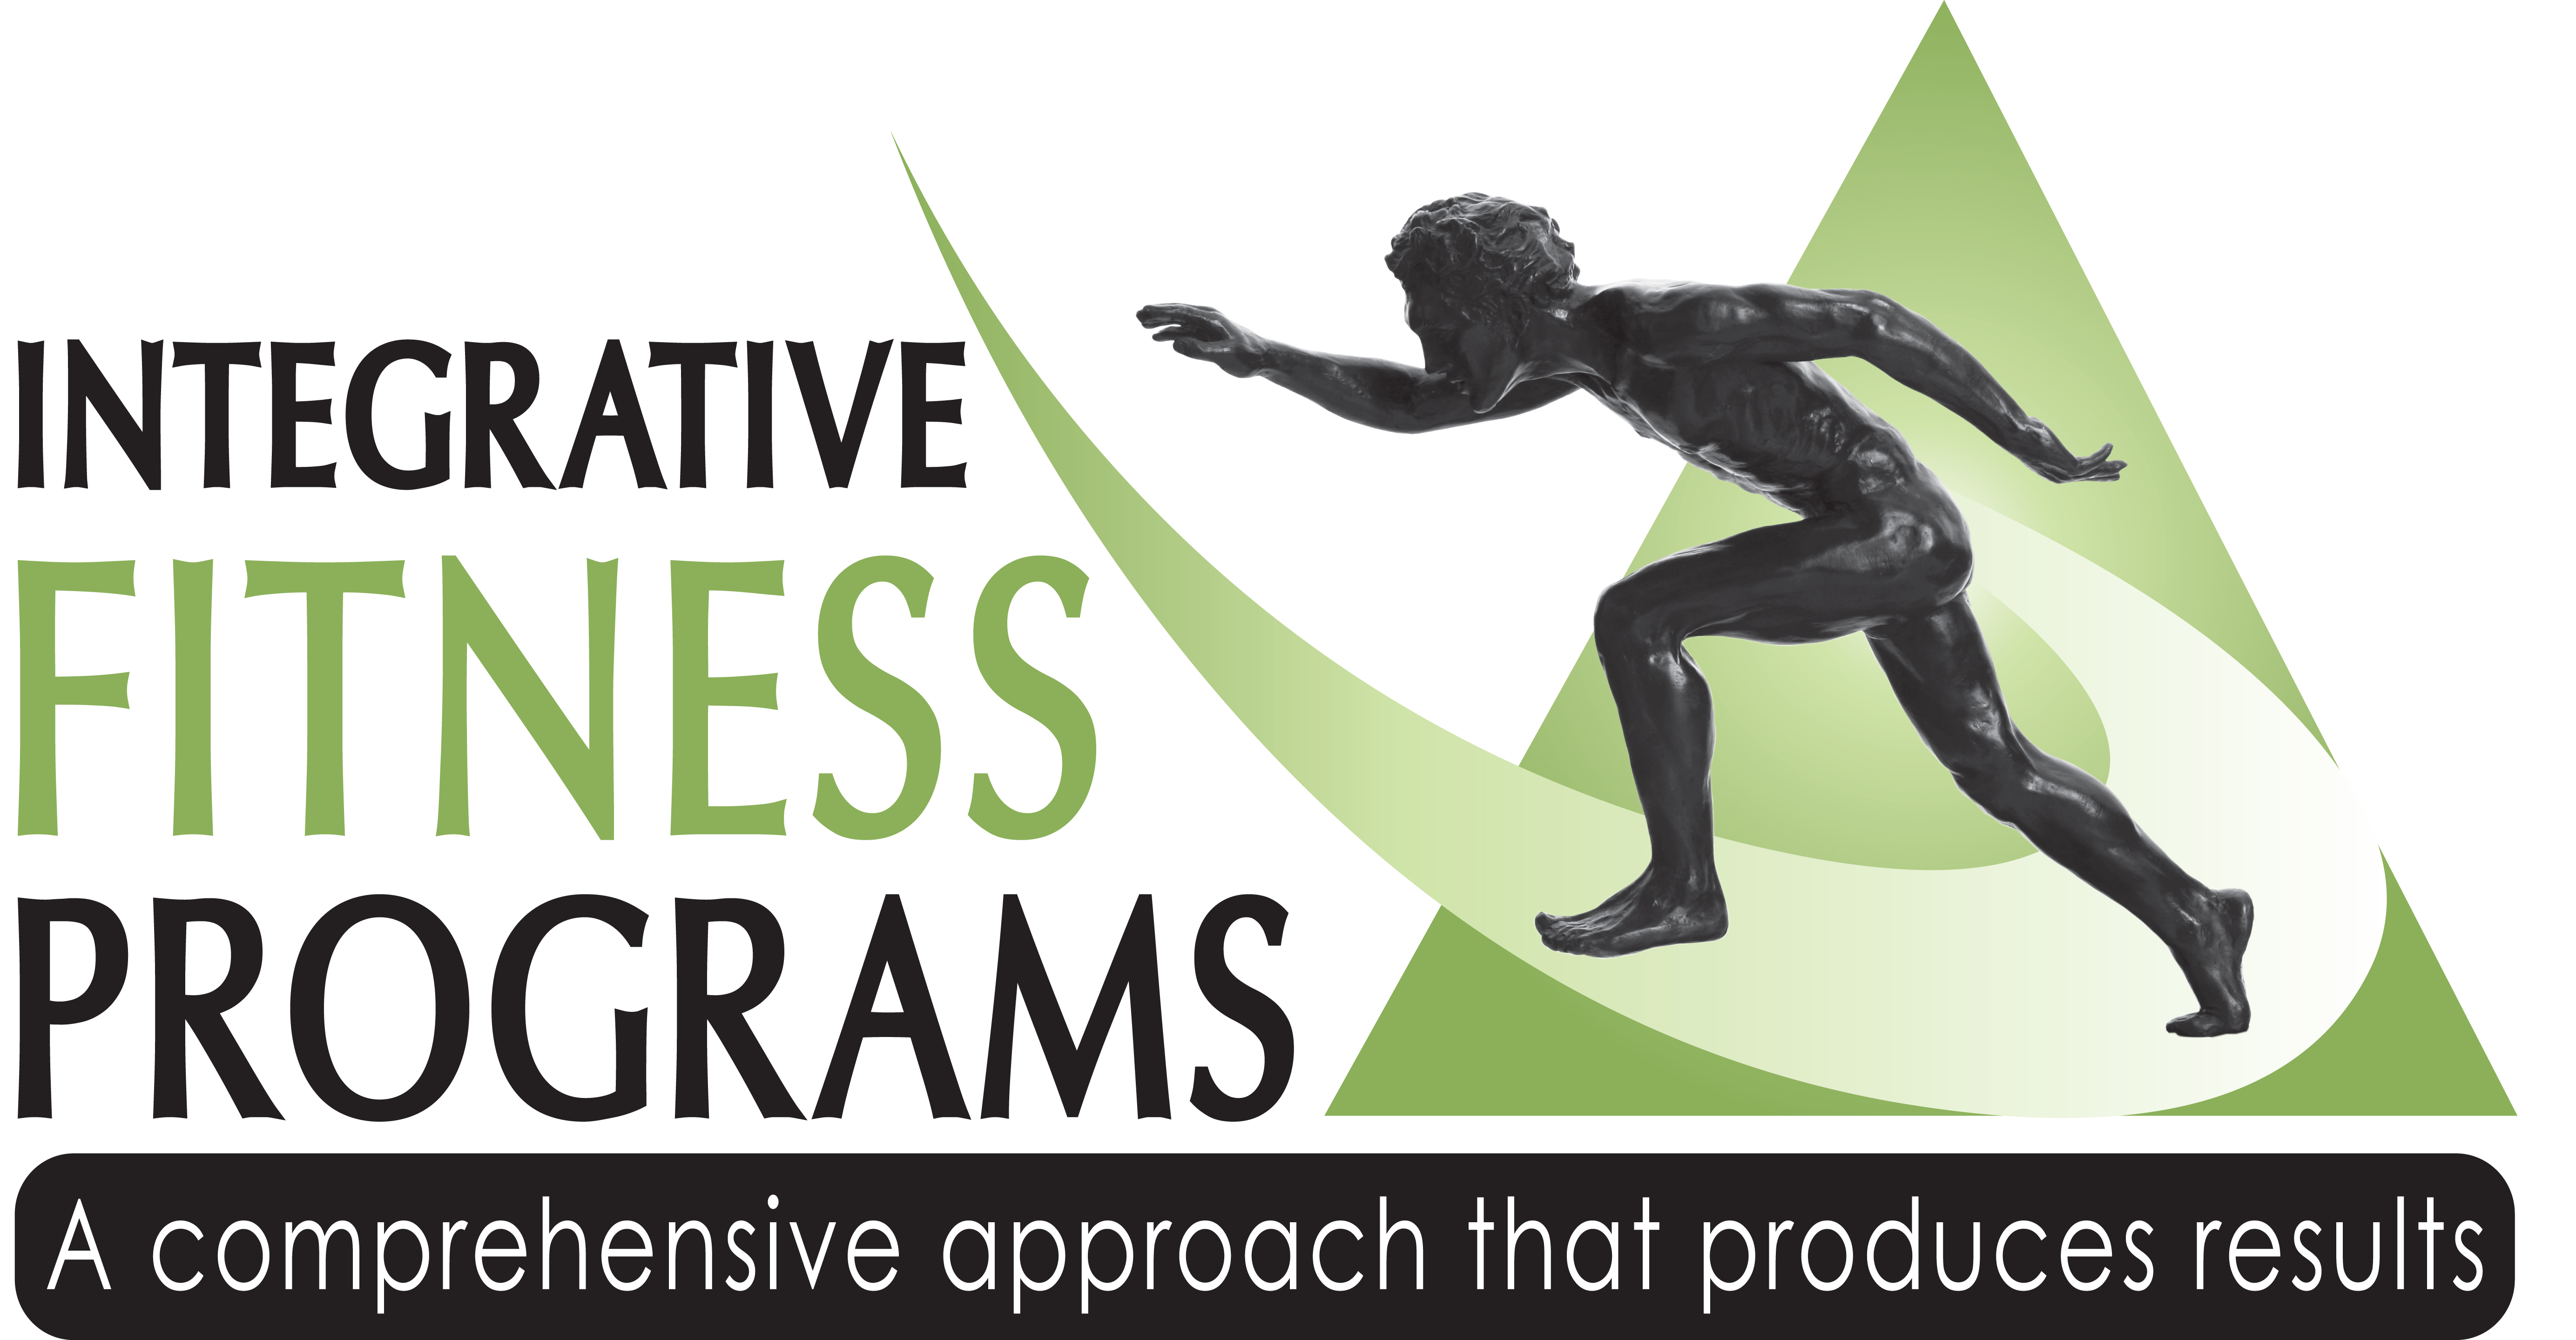 Integrative Fitness Programs, 360 Web Designs, May Featured Client